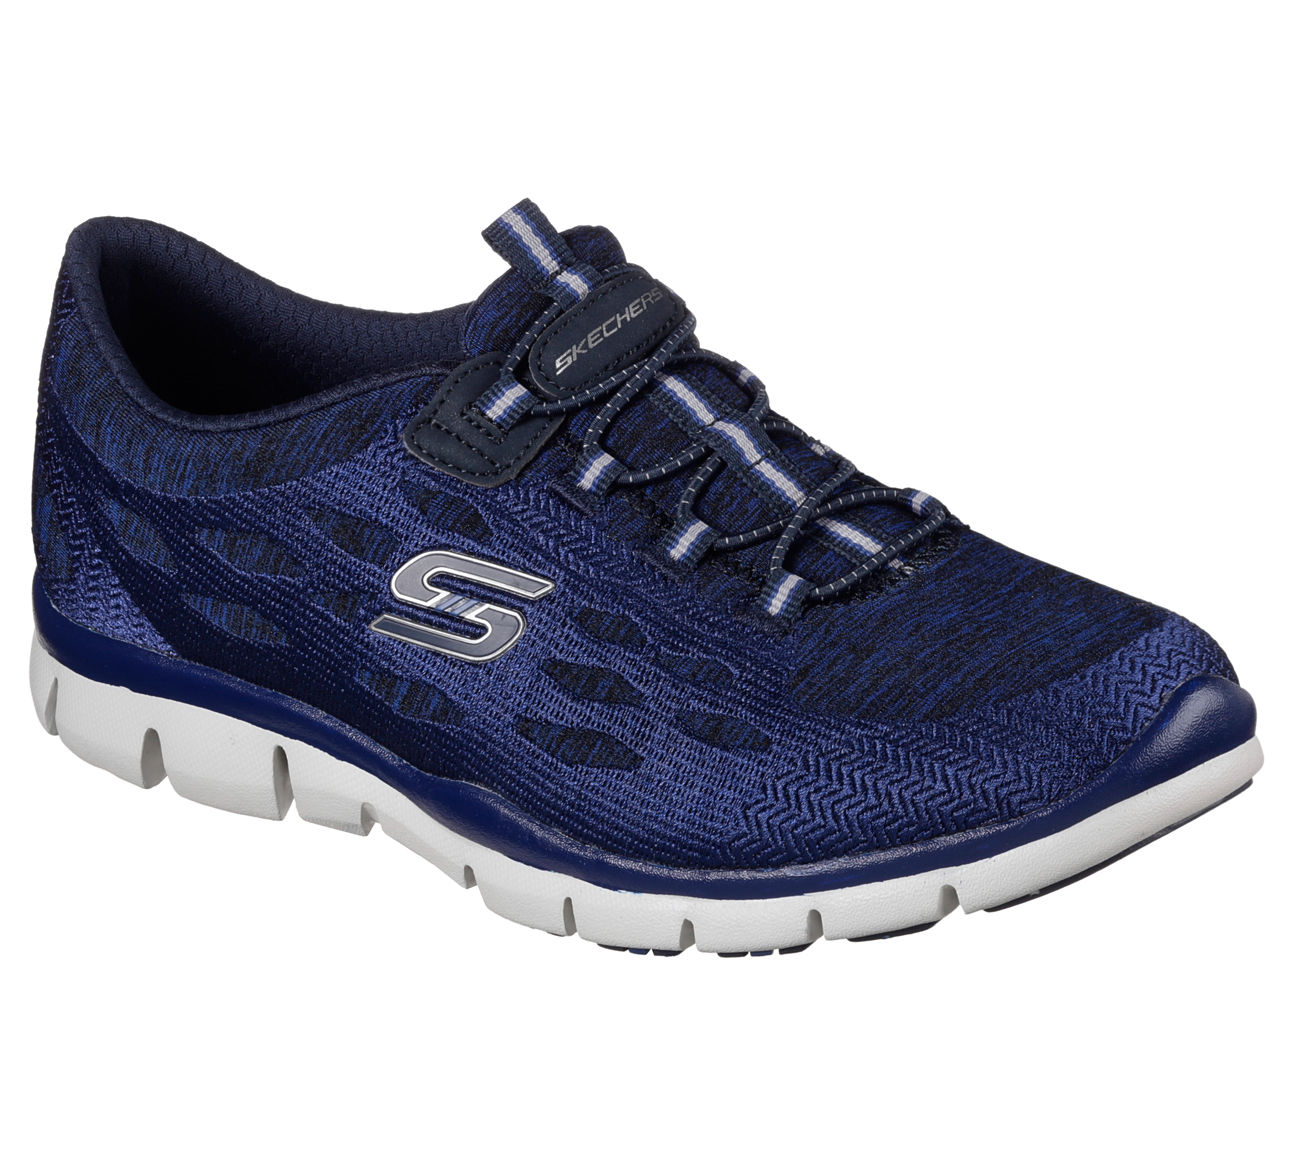 Skechers 22757 NVY Women's GRATIS BLISSFULLY Sneakers by Skechers